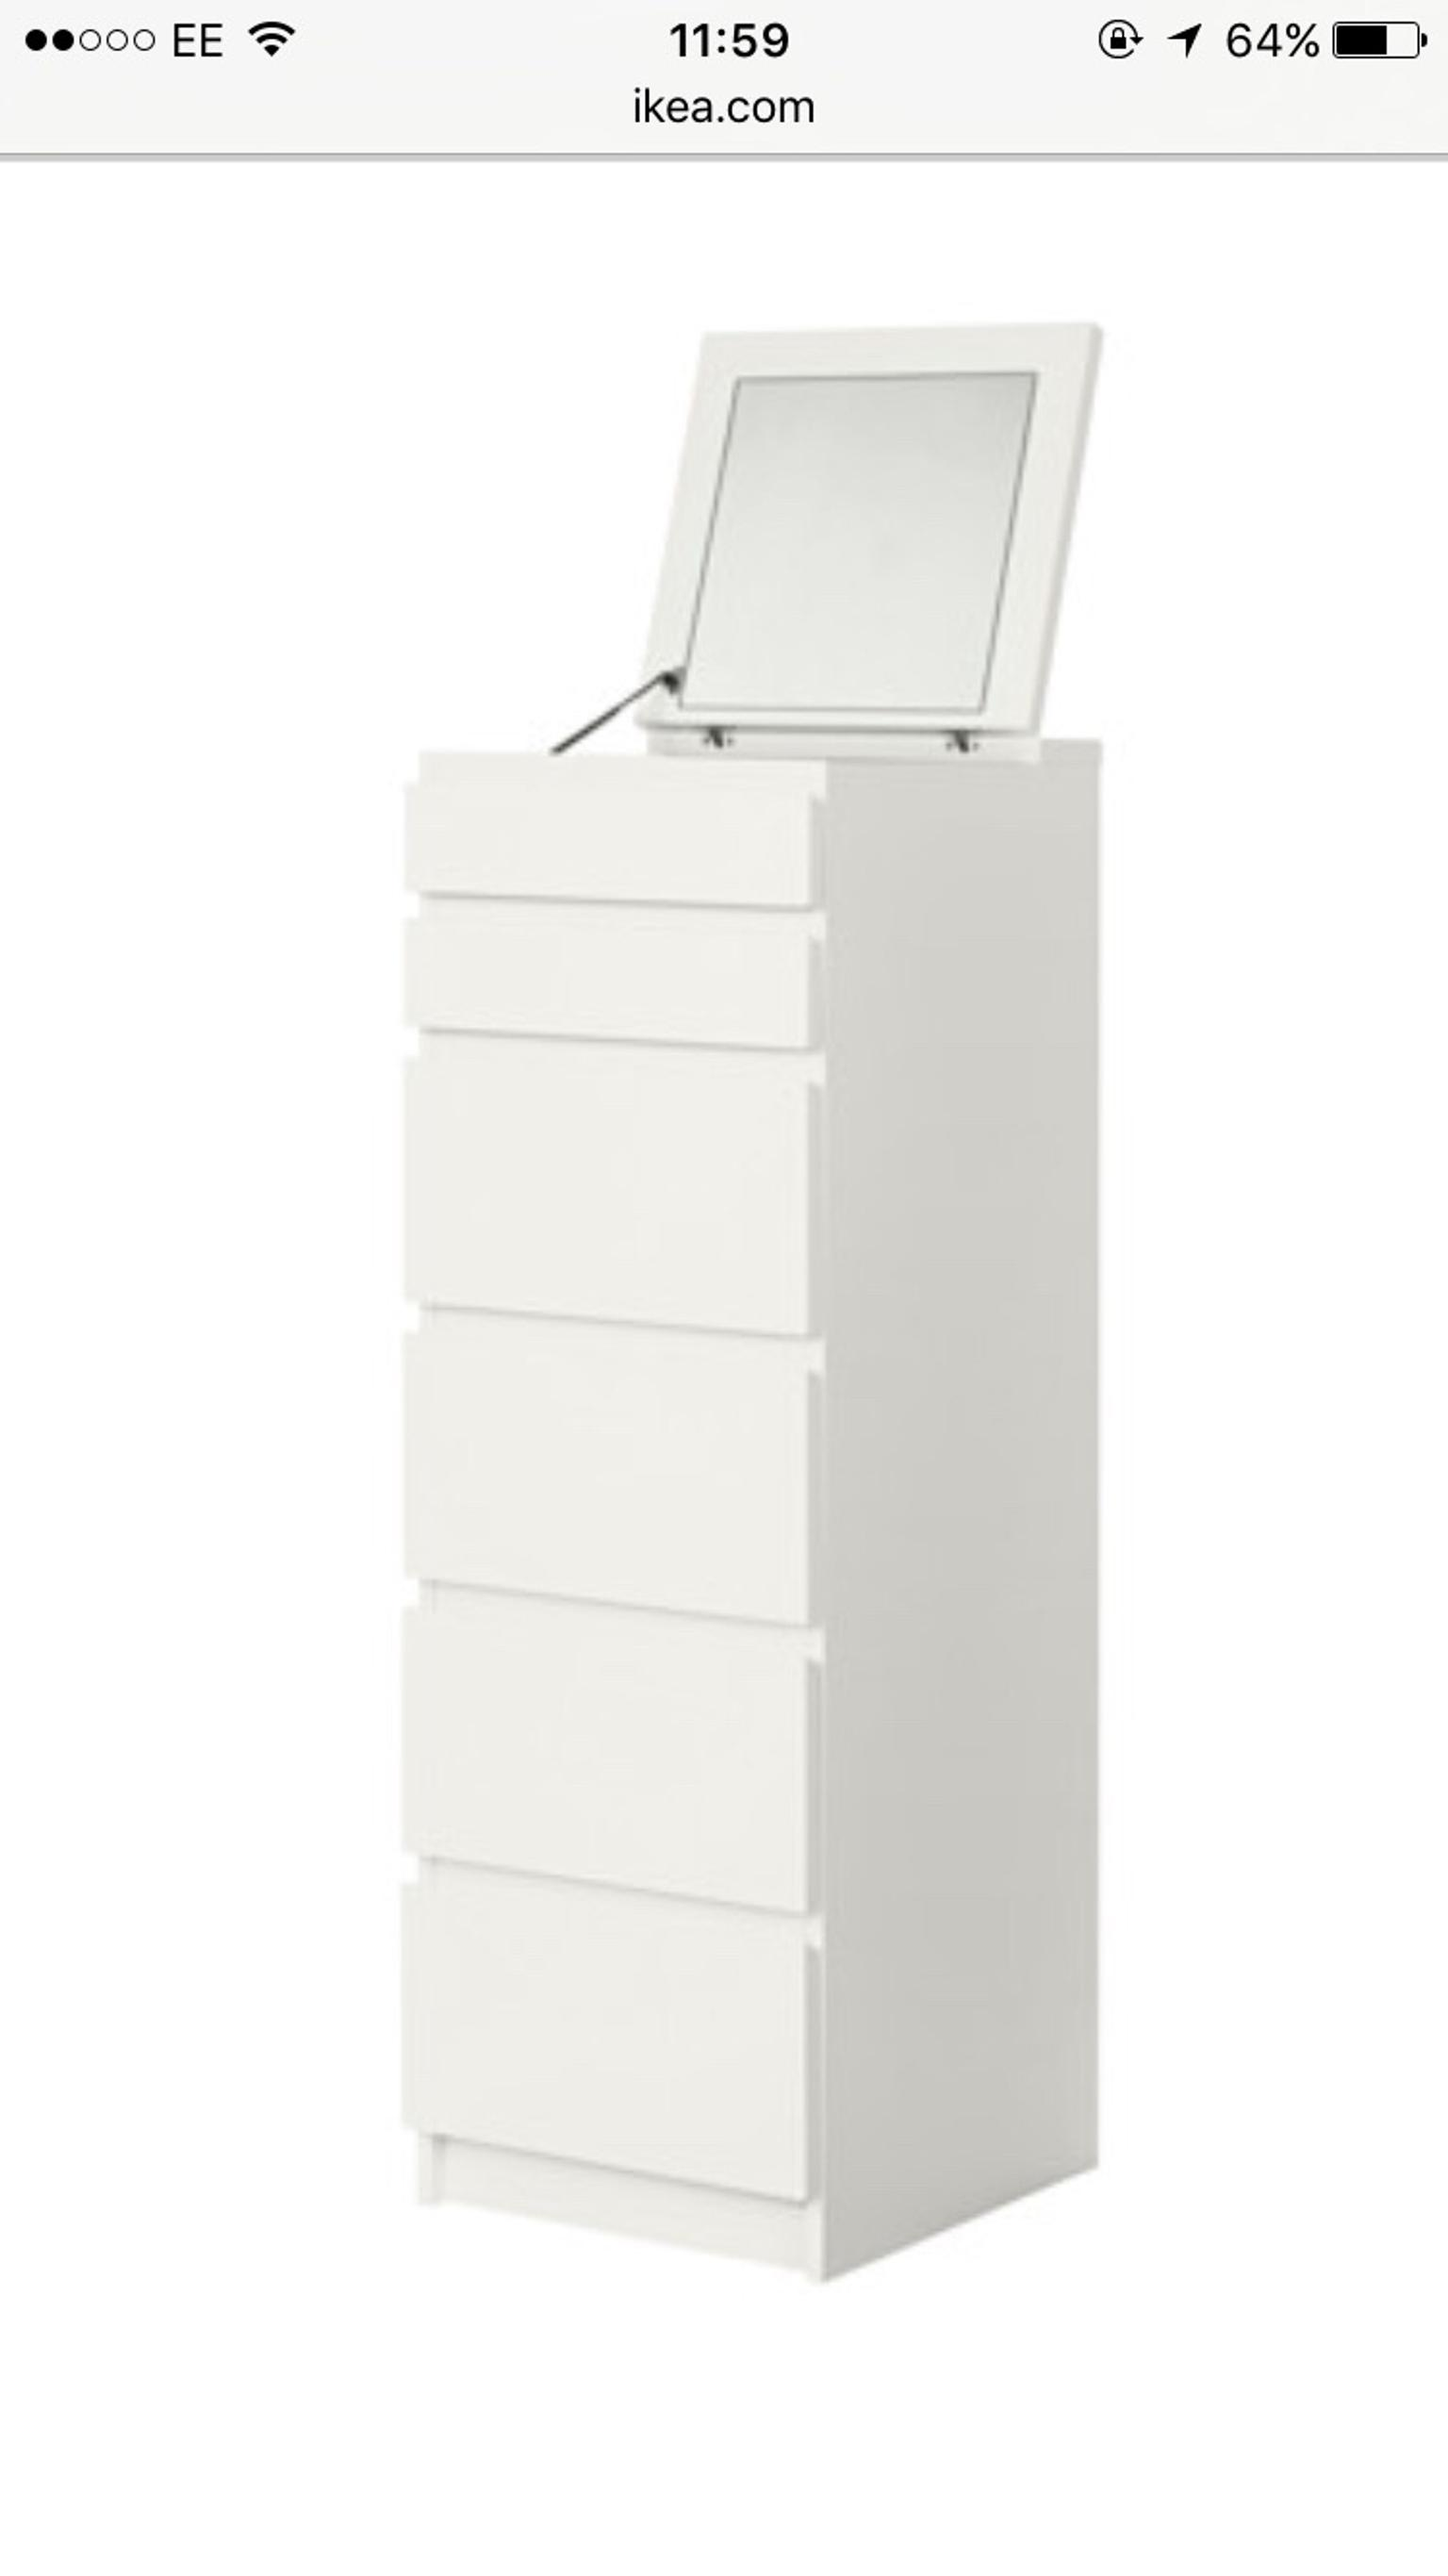 Ikea Malm 6 Chest Of Drawers Tall Boy